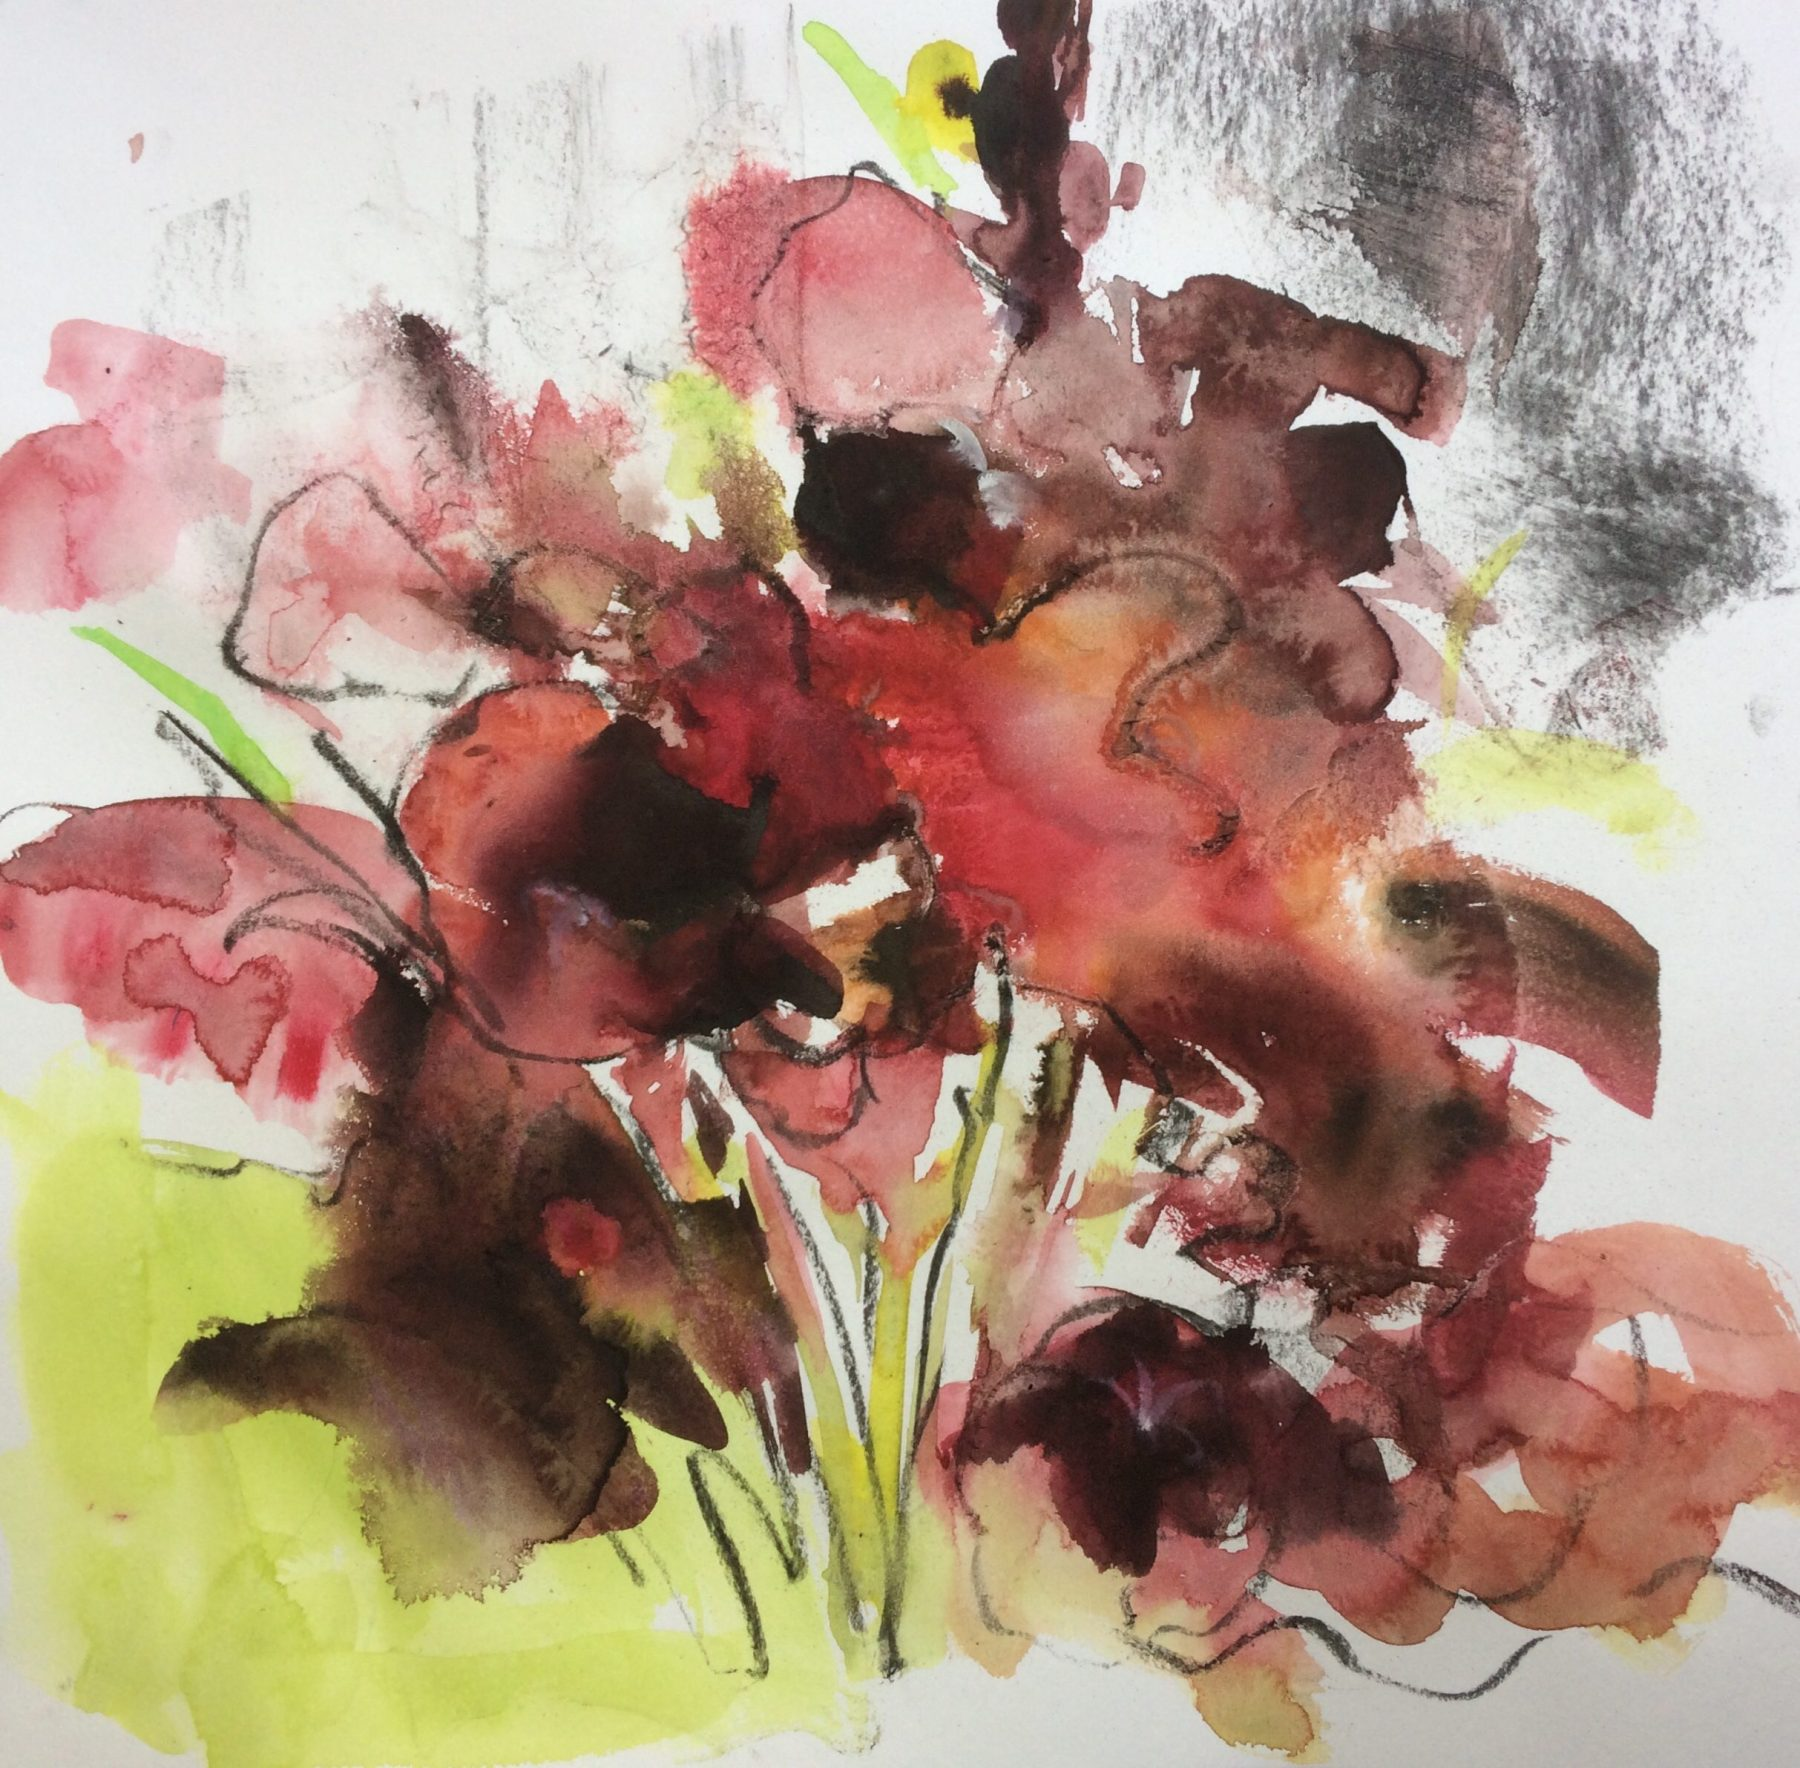 Especially Espresso, mixed media drawing of gladioli by Maxine Dodd